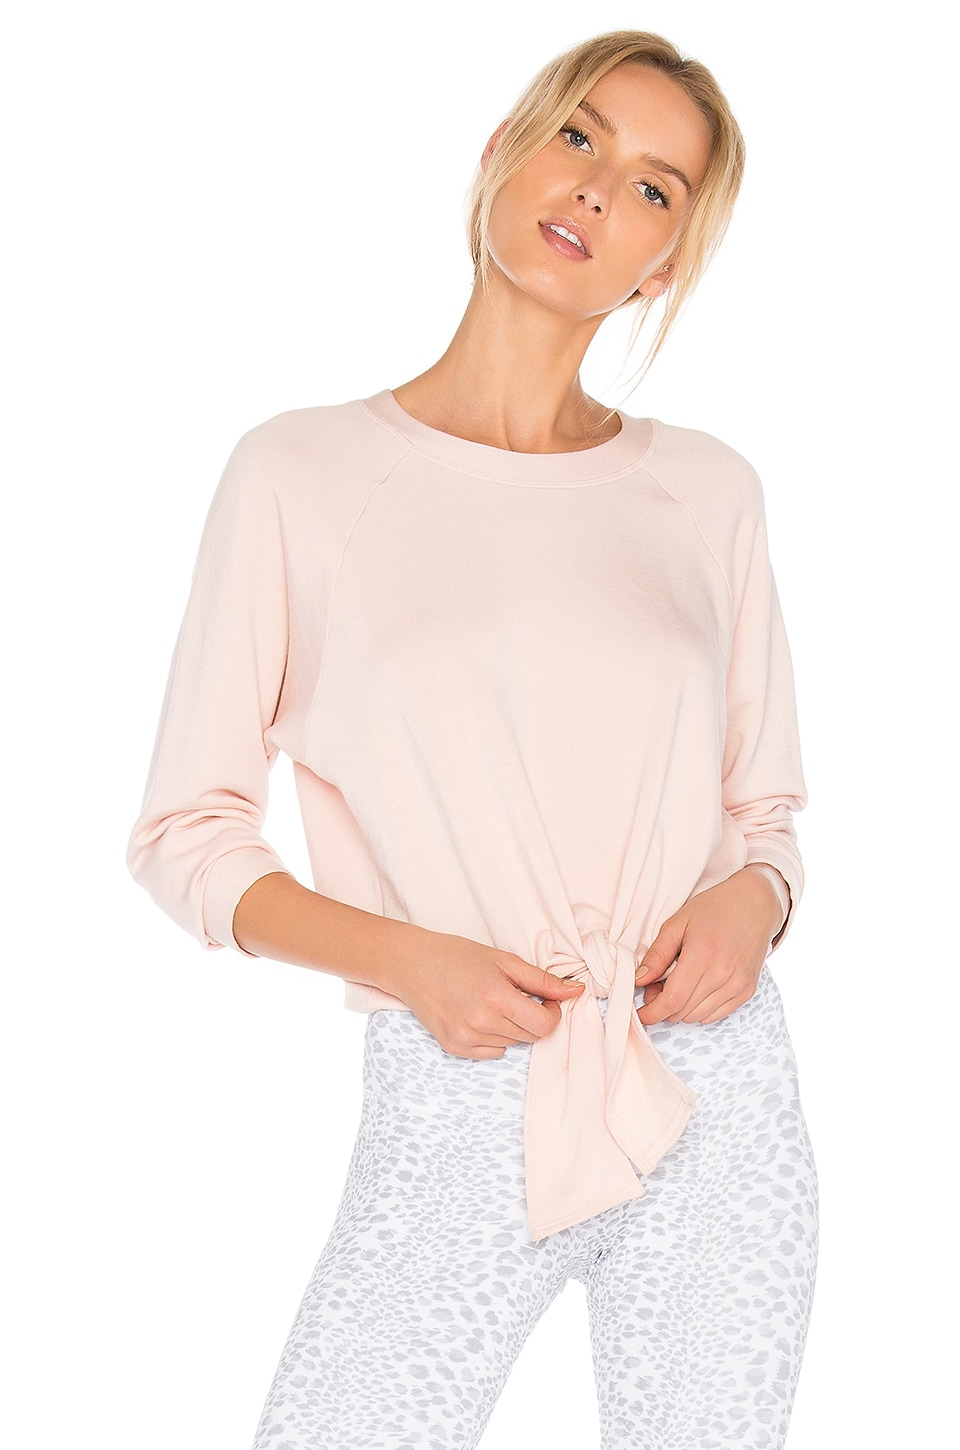 STRUT-THIS The Sky Sweatshirt in Blush